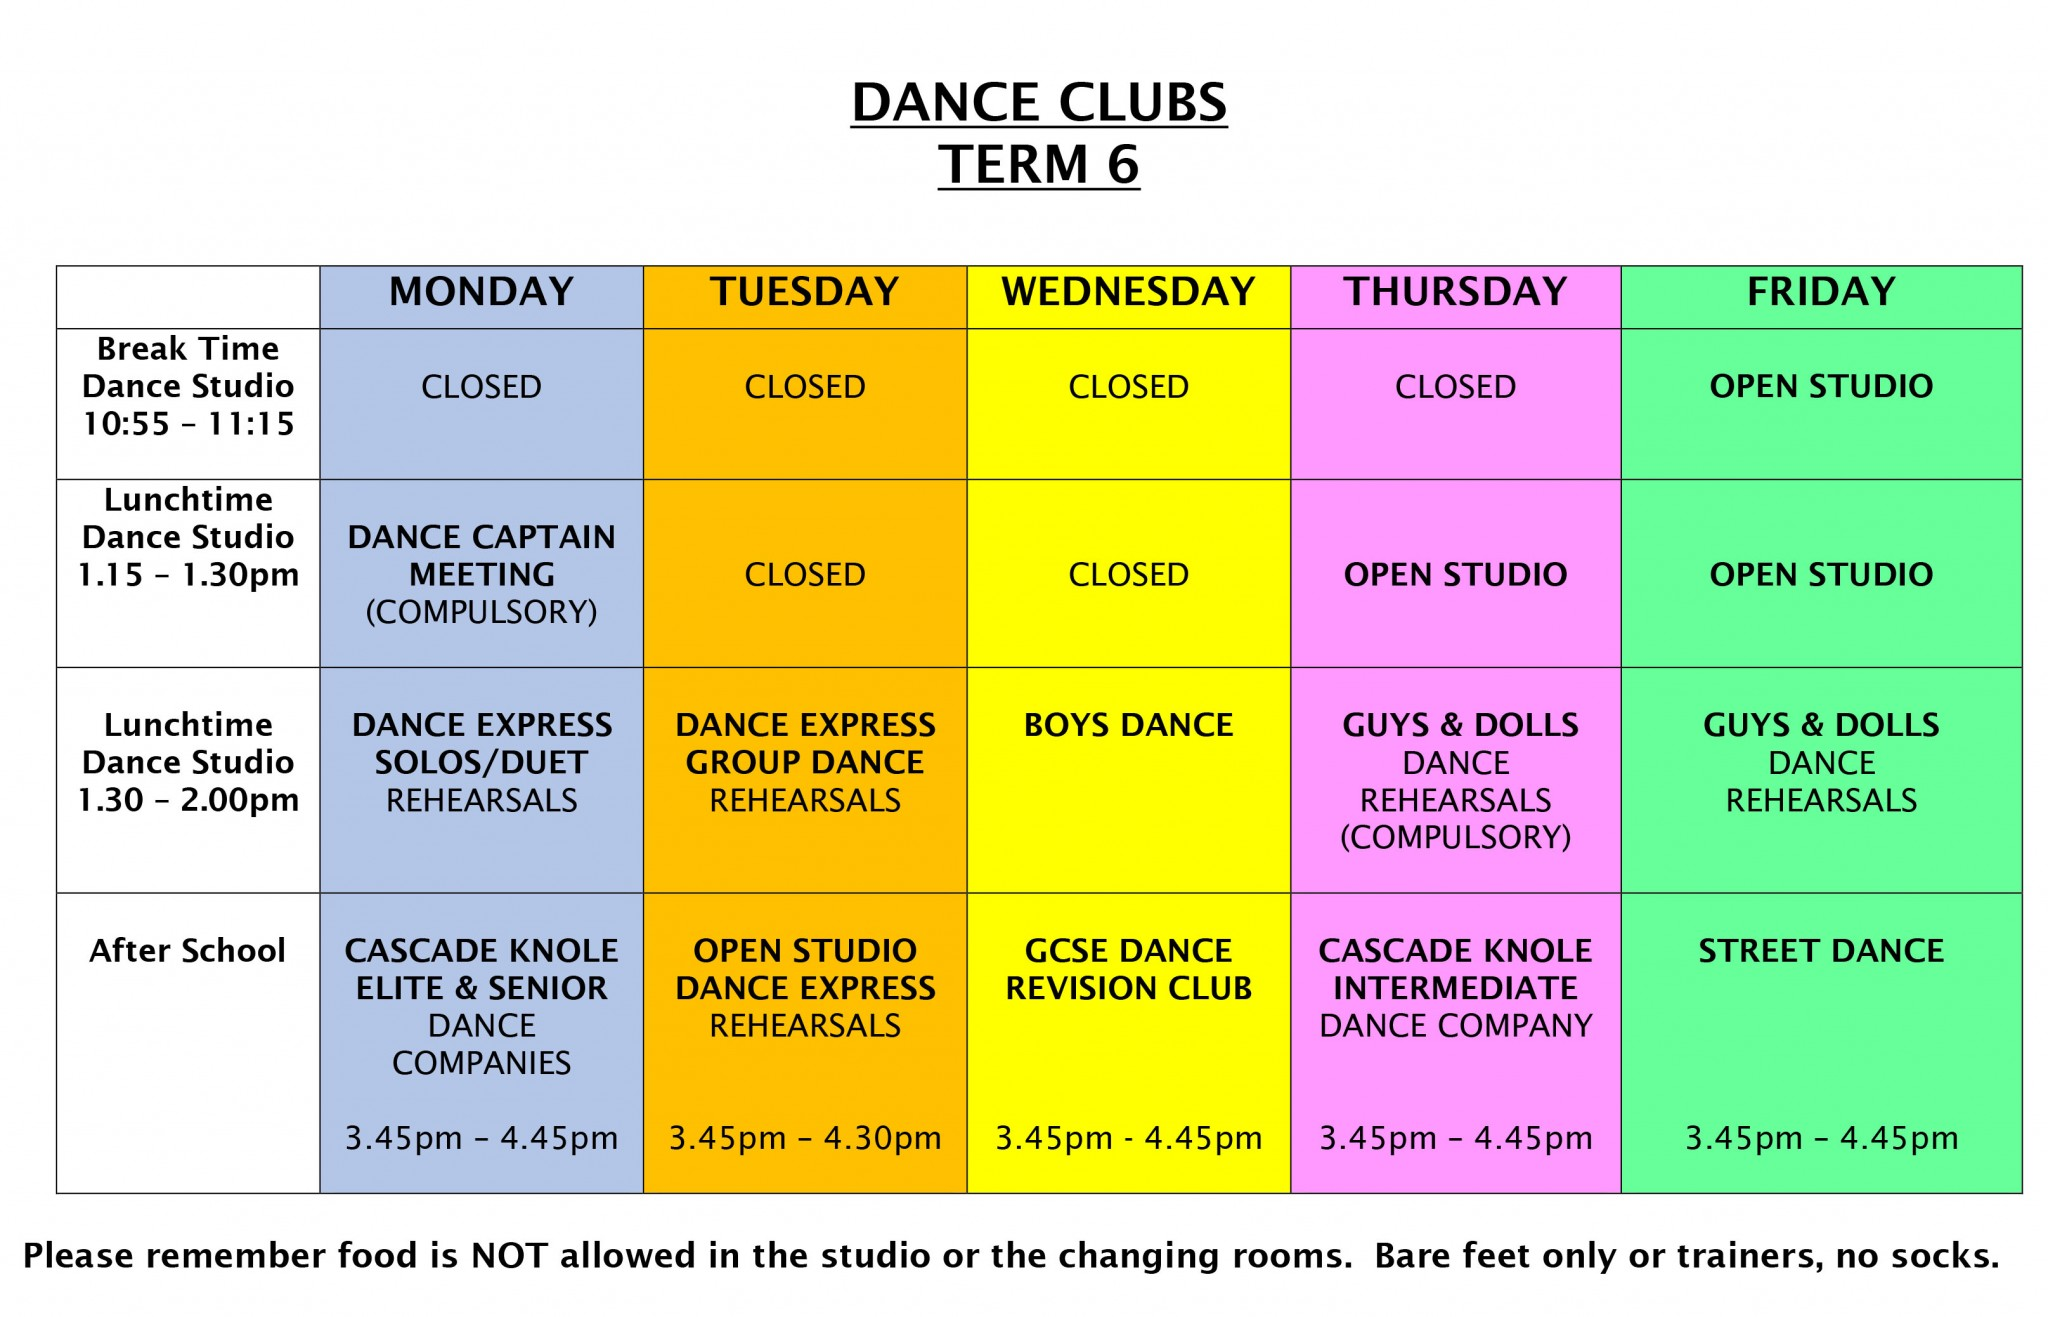 DANCE CLUBS Term 6 4